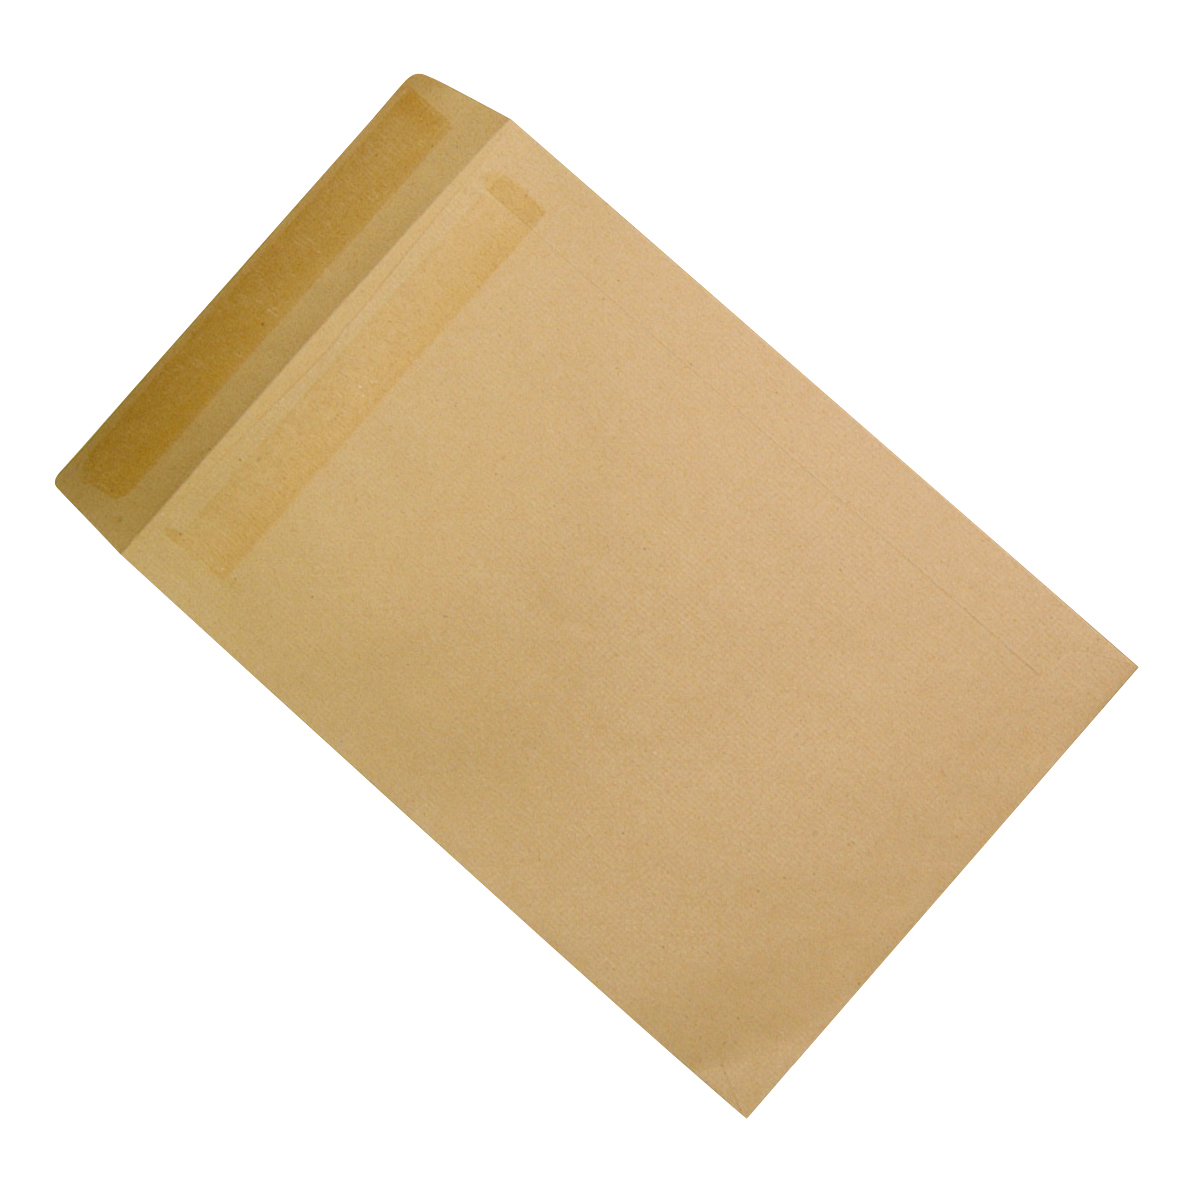 Wage Envelopes 5 Star Office Envelopes FSC Recycled Pocket Self Seal 115gsm 406x305mm Manilla Pack 250